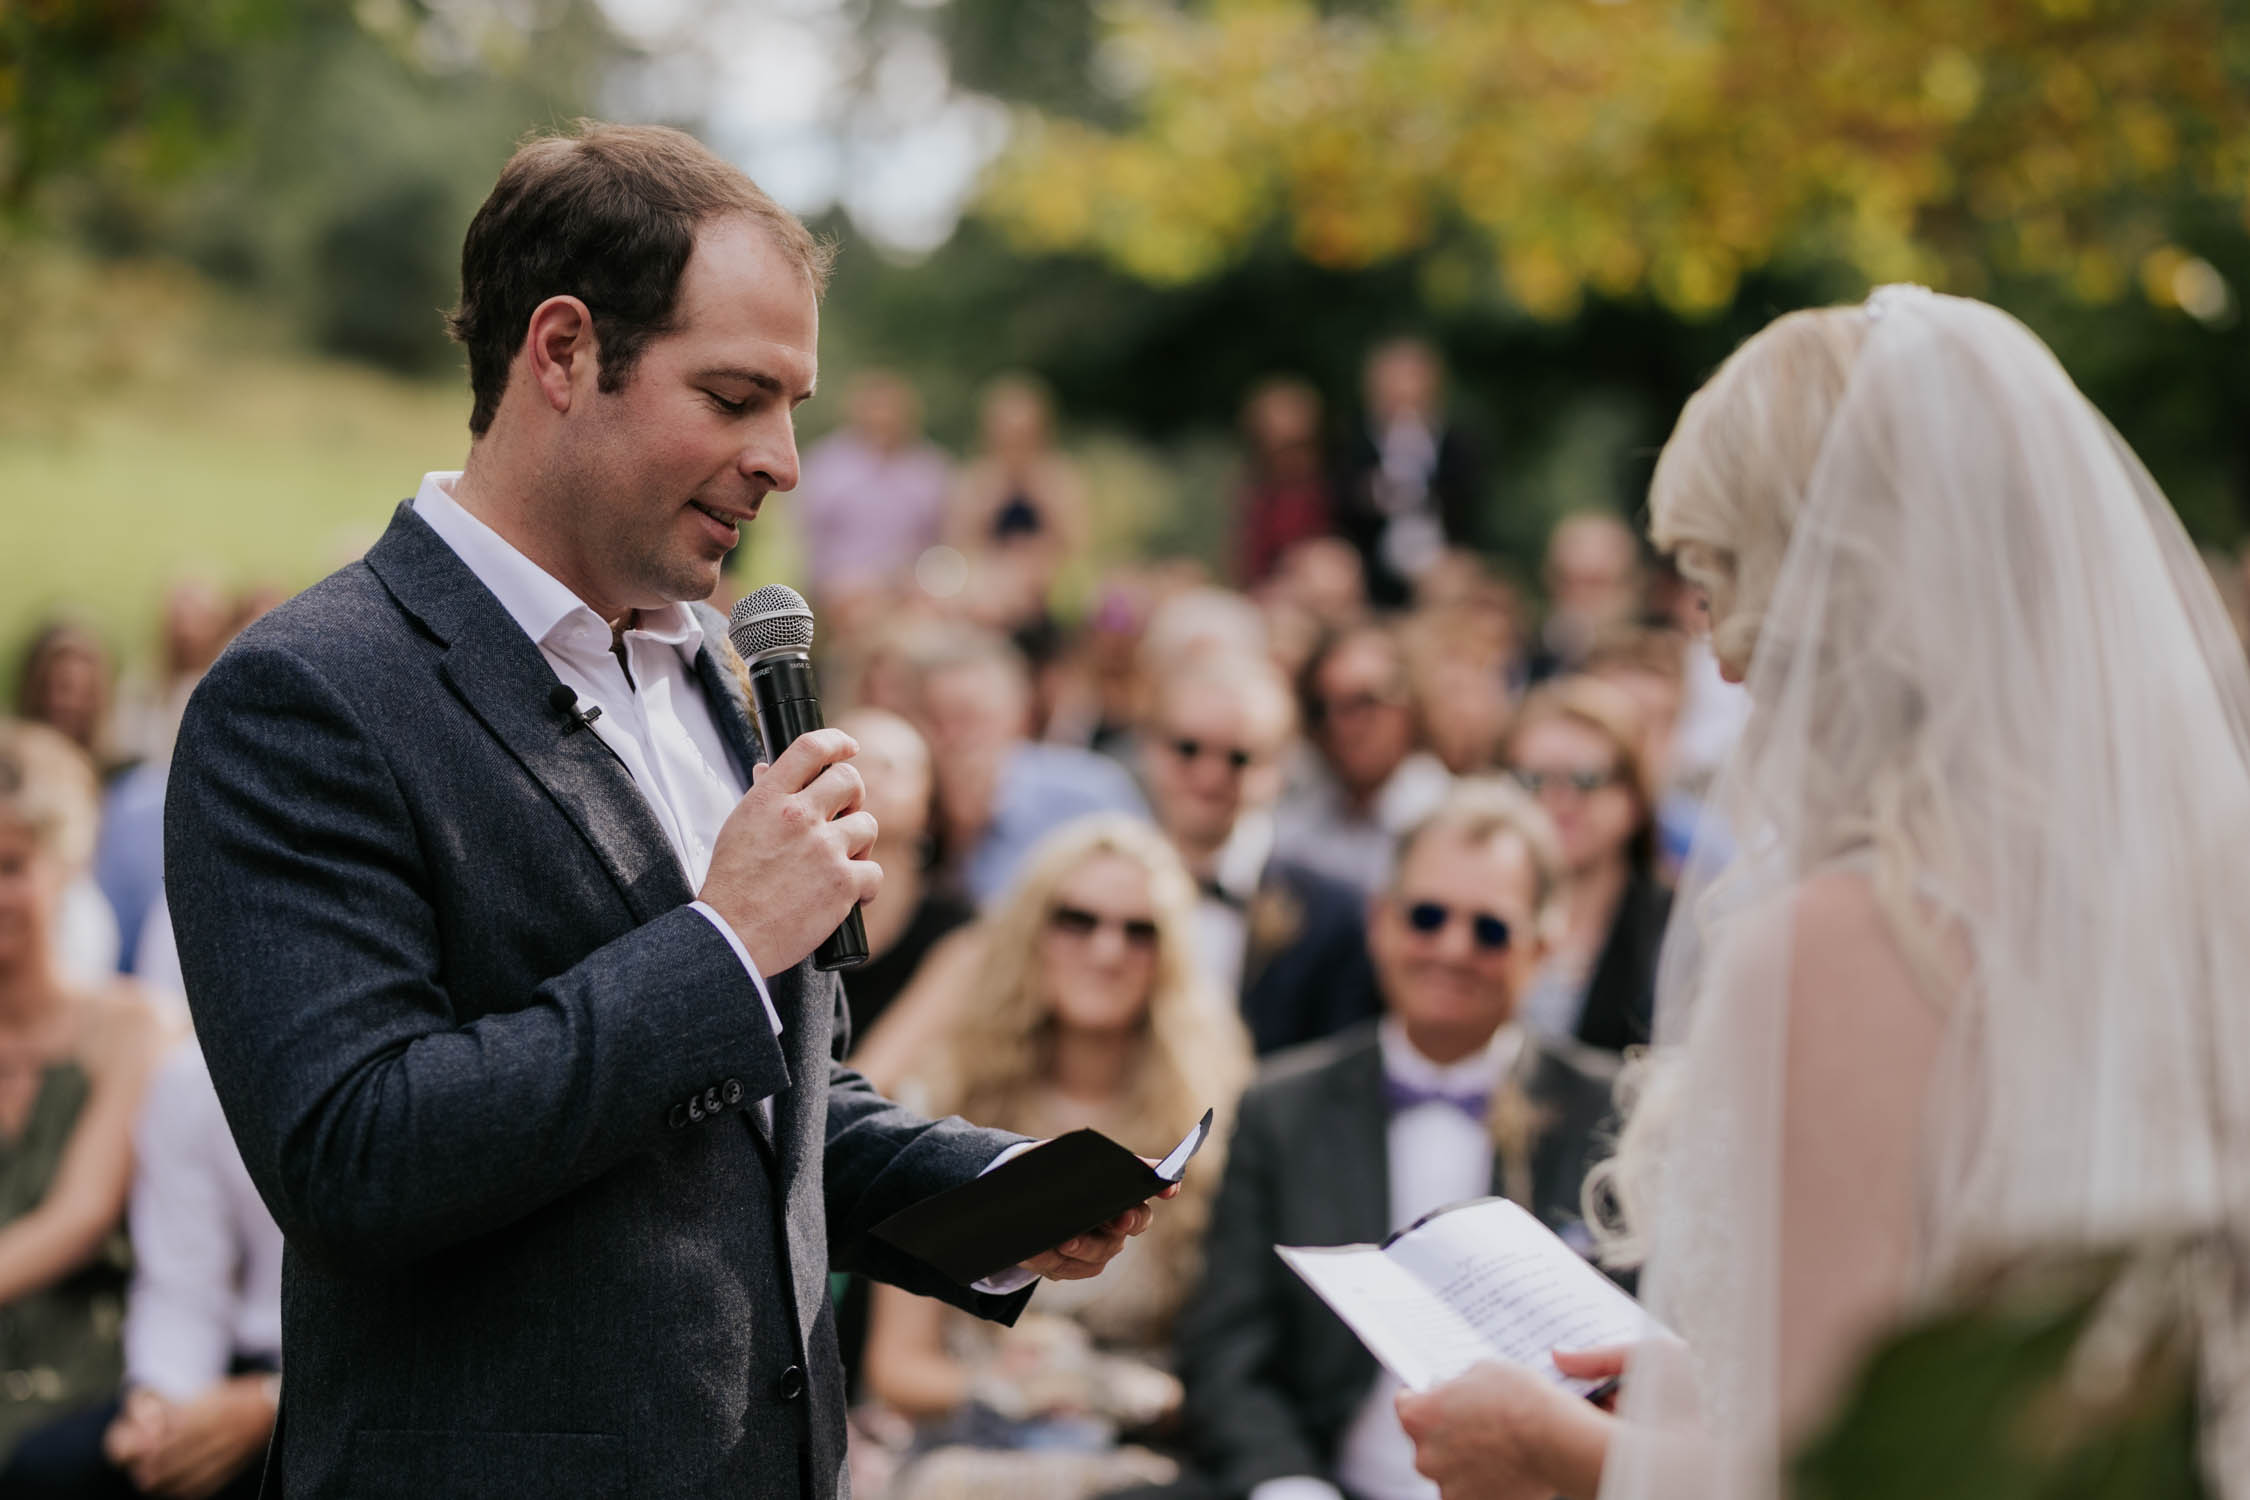 Groom saying his vows to the bride. Bride wearing a low cut dress with beautiful and detailed beadwork with a skirt that is see through and cute shorts underneath almost like a jump suit underneath a wedding dress. She is holding a wedding bouquet of burnt orange pink and red flowers and roses with dried ferns and grass in it.